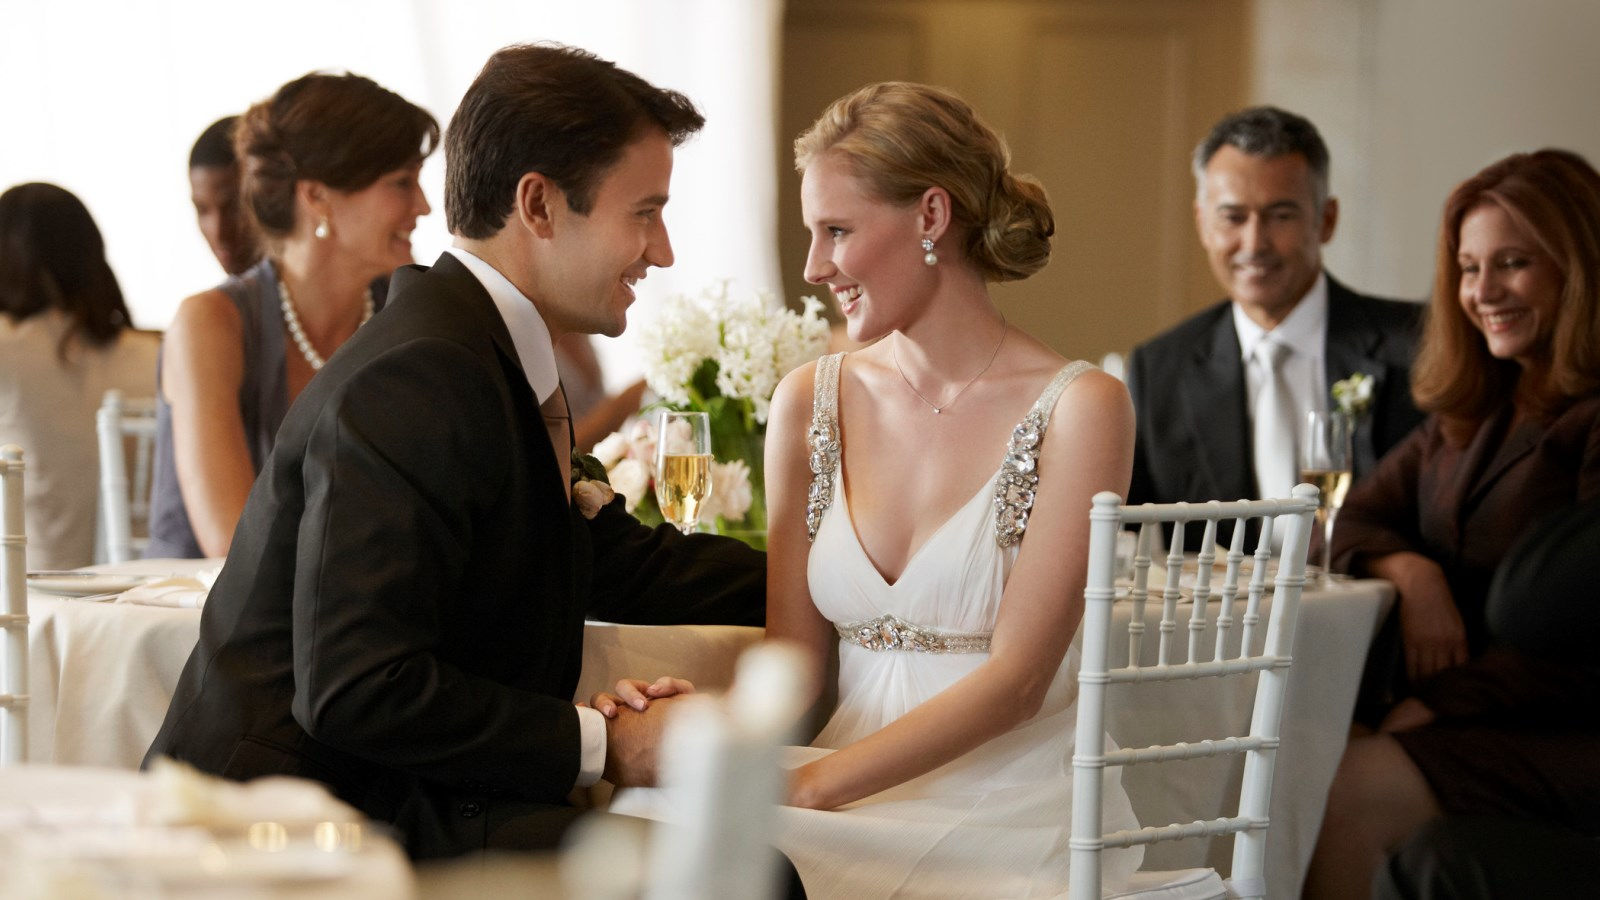 Calgary Wedding Venues - Bridal Couple